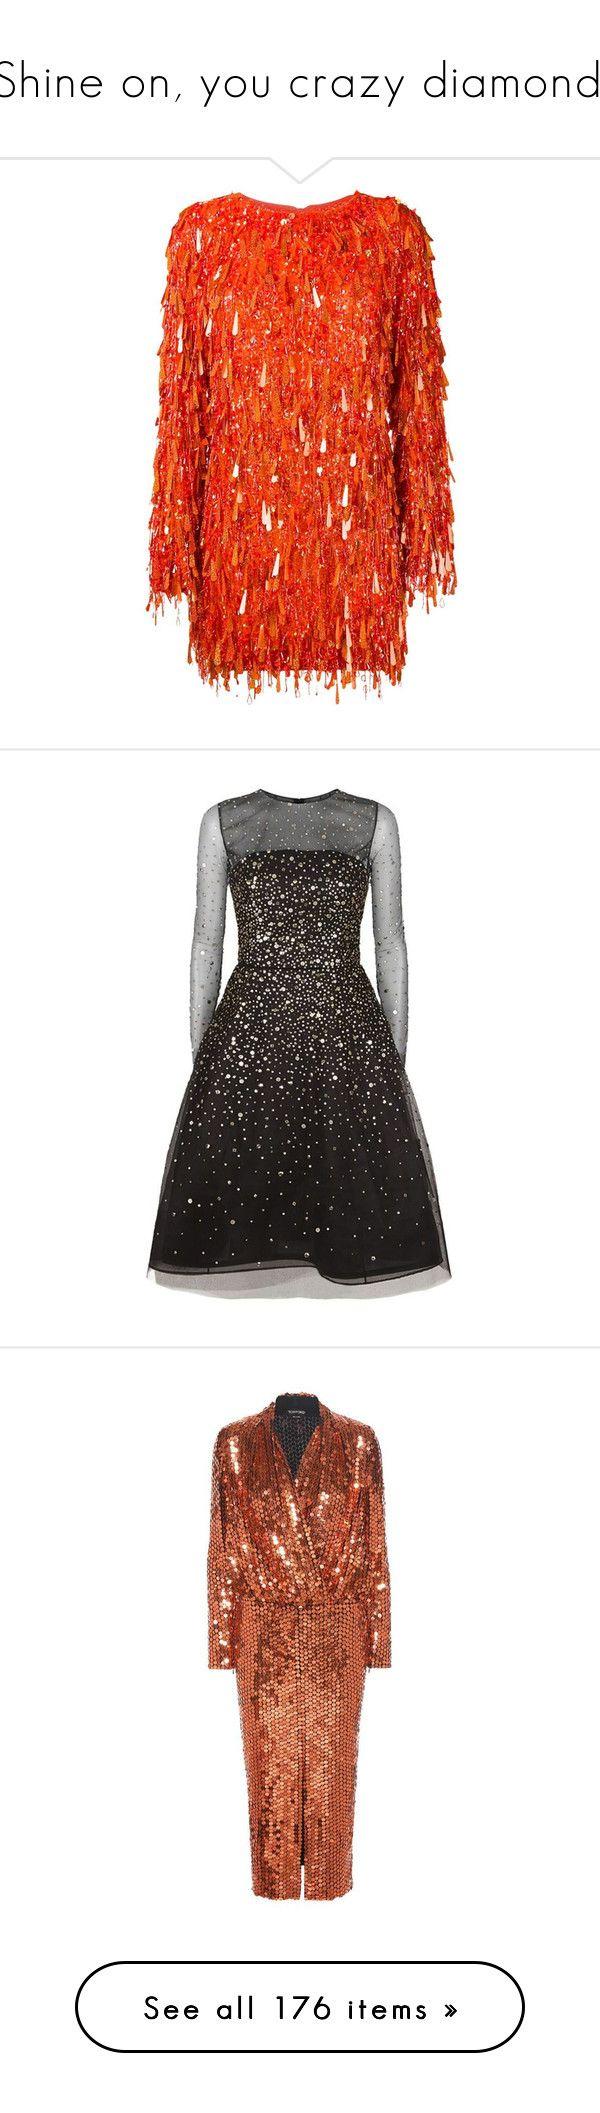 """Shine on, you crazy diamond."" by pinkdaisyprincess on Polyvore featuring dresses, ashish, orange, red dress, red sequin dress, short cocktail dresses, red sequin cocktail dress, long sleeve sequin dress, sparkly cocktail dresses i sparkly dresses"